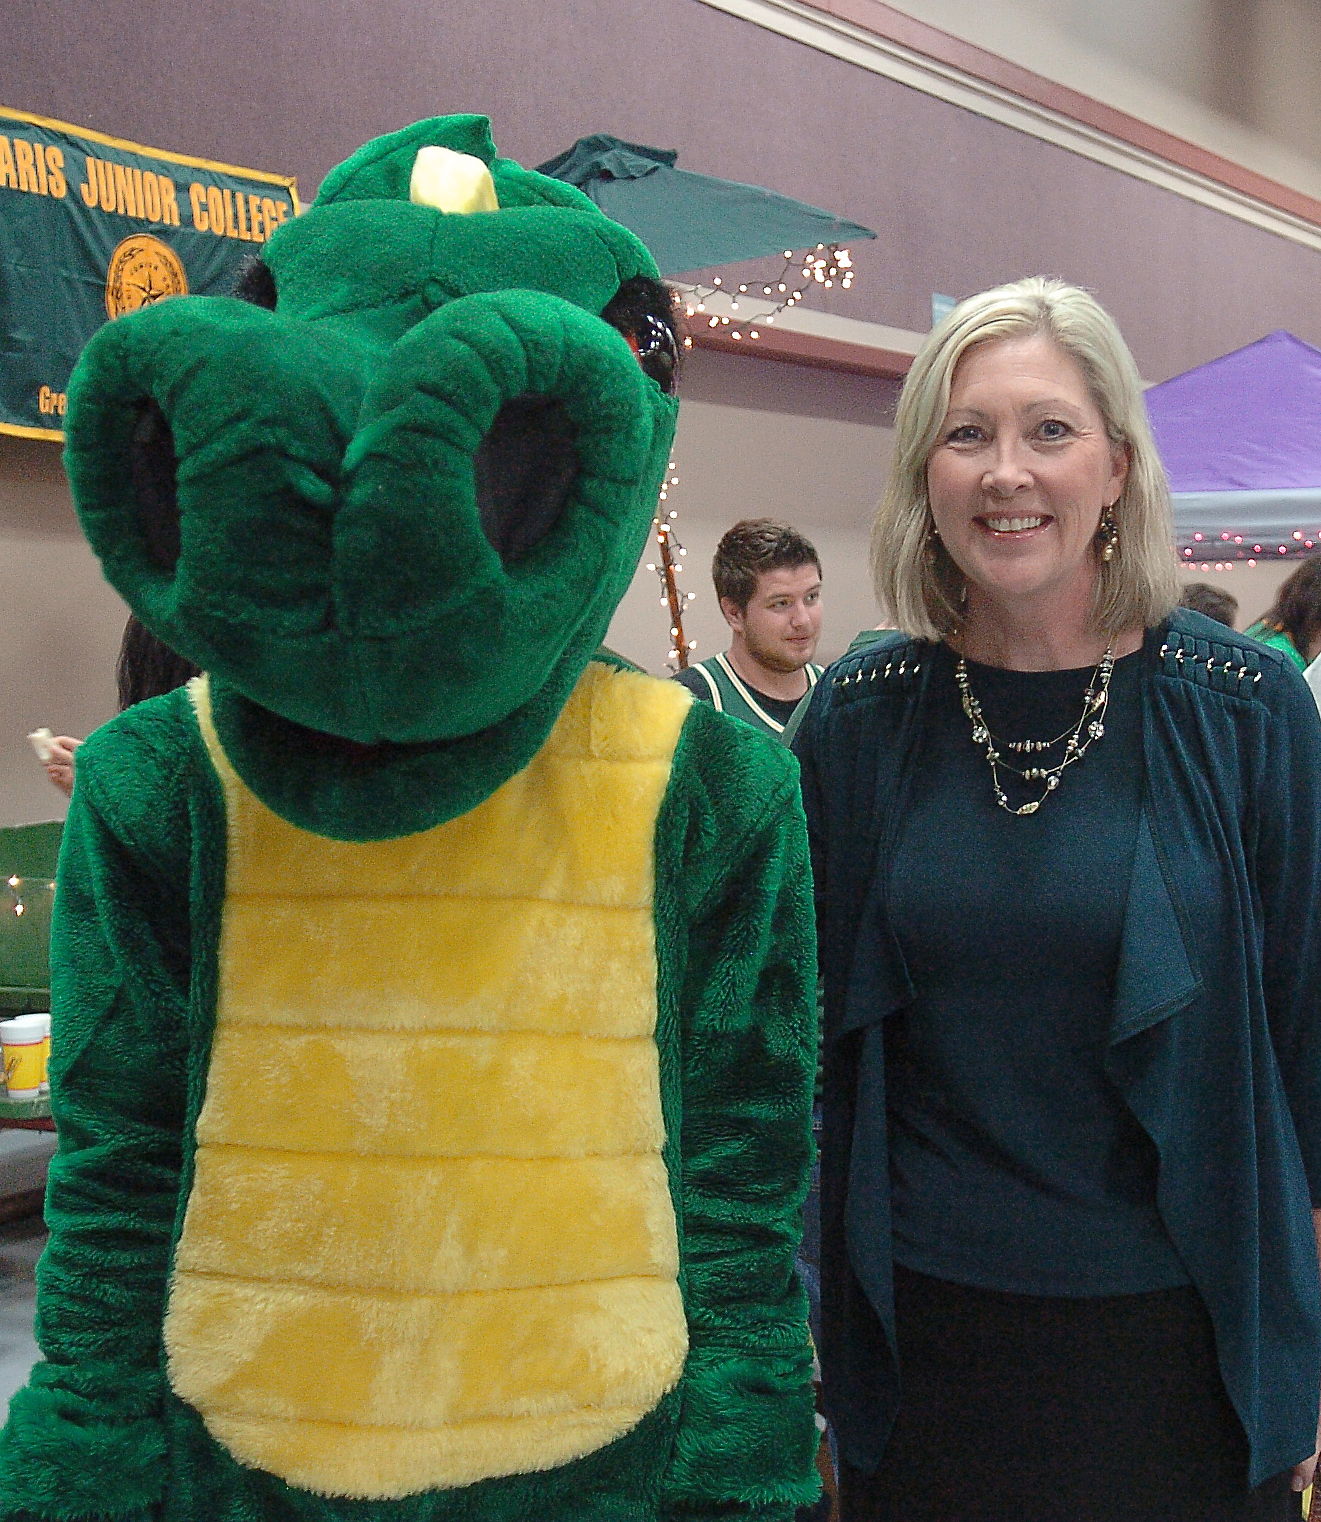 Paris Junior College President Dr. Pamela Anglin, right, accompanied Pyro at the 2014 NLEF Tailgate Scholarship event.